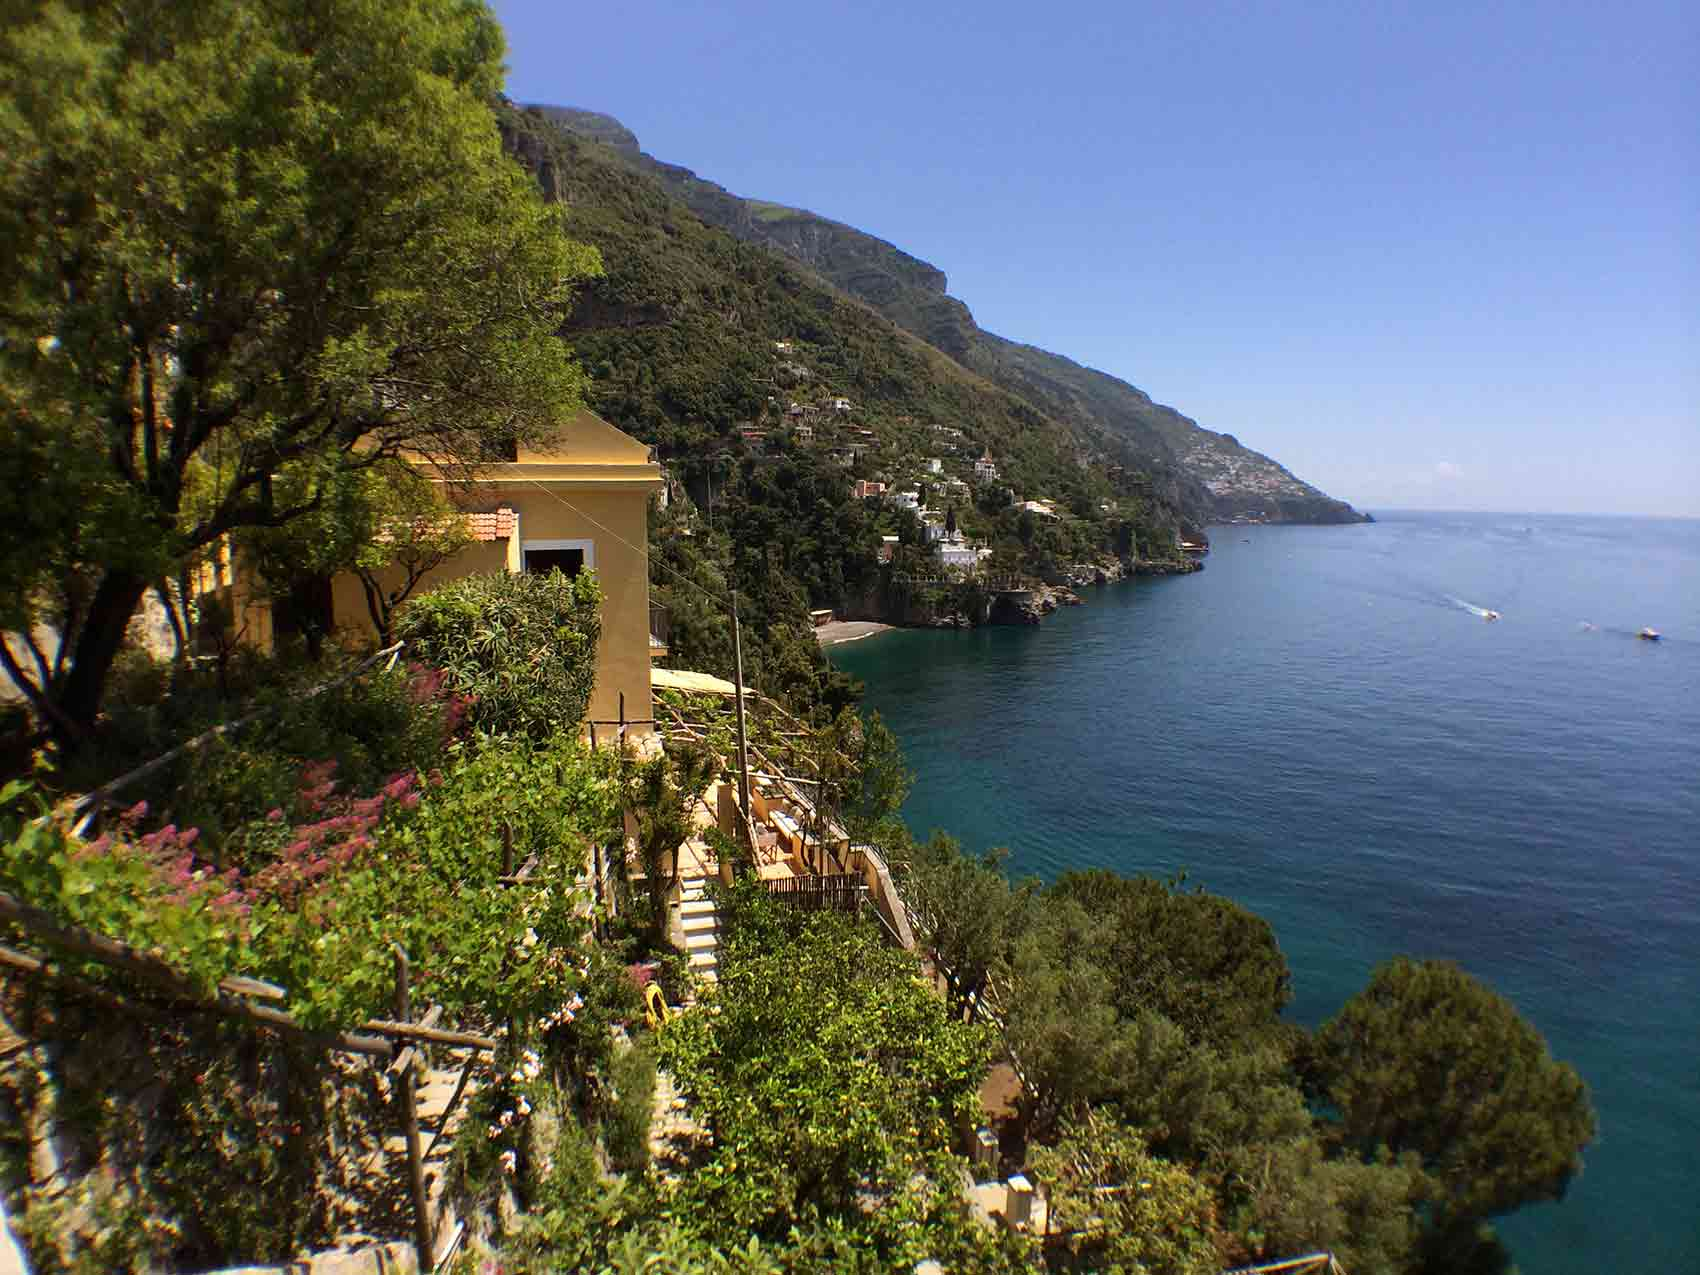 Casa juliana positano villa private villas of italy for Casa positano